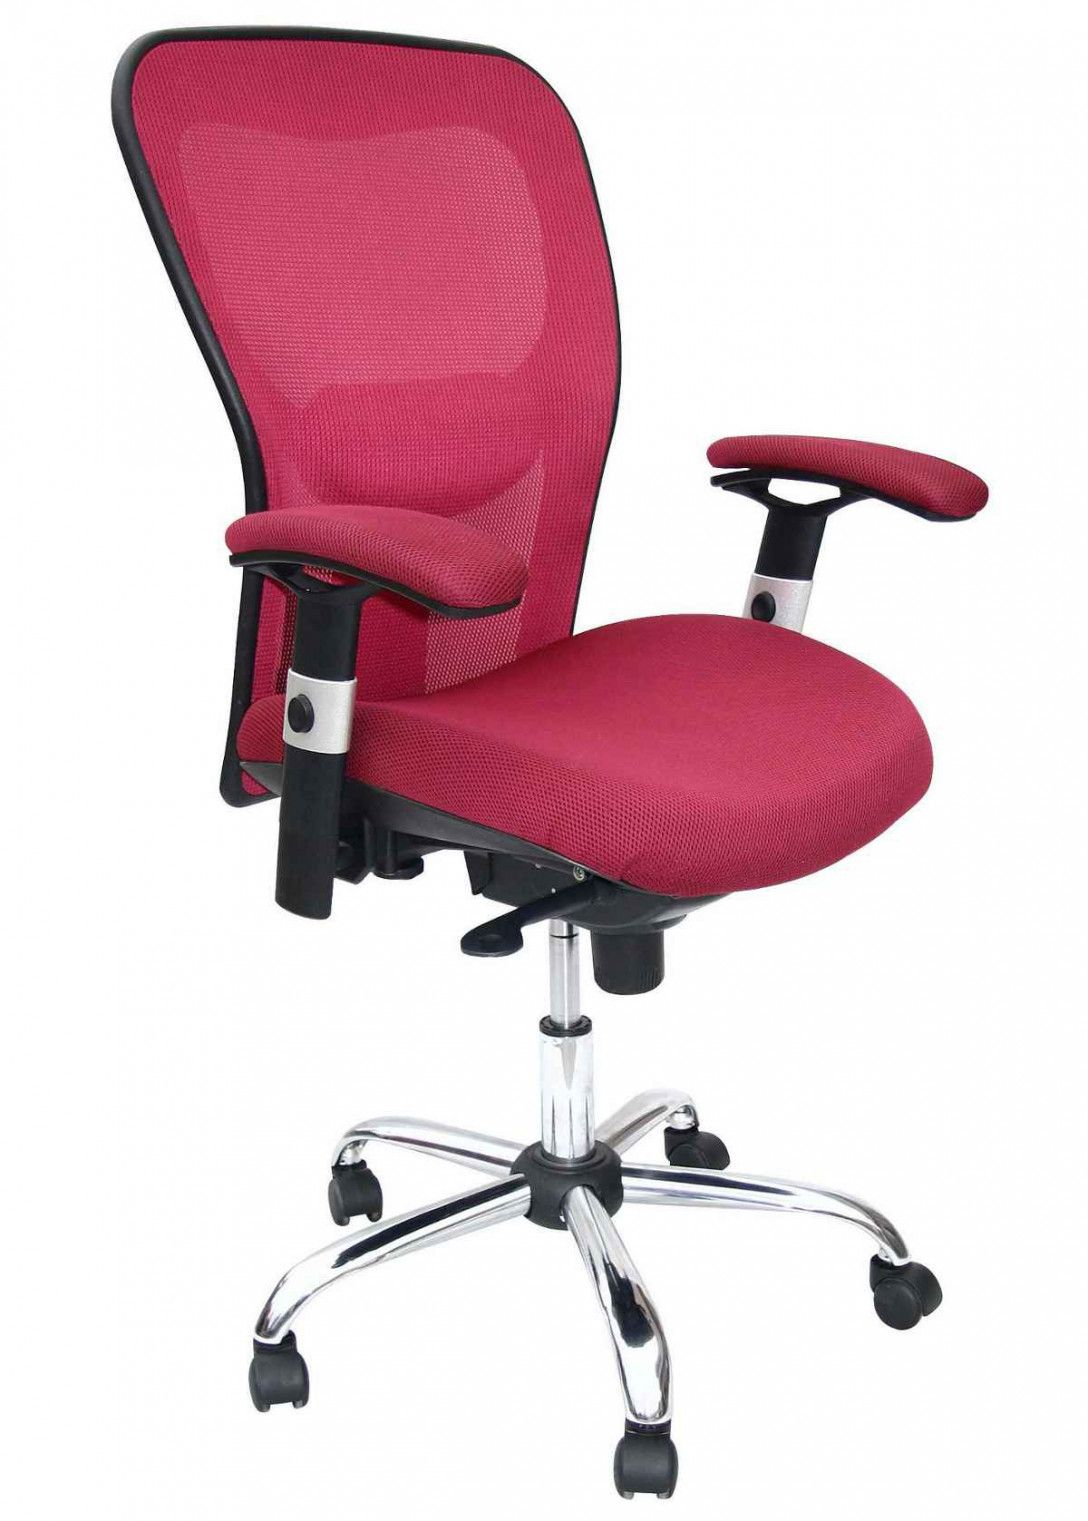 77+ Hot Pink Office Chair - Home Office Furniture Ideas Check more Hot Pink Office Chair on hot pink tv, hot pink egg, pink lift chair, hot pink plastic chairs, hot pink bubble chair, hot pink wing chair, hot pink adirondack chair, hot pink kitchen chair, hot pink swivel chair, hot pink party chair, hot pink bungee chair, hot pink pen, hot pink hand chair, hot pink ball chair, hot pink computer chair, hot pink office furniture, hot pink club chair, hot pink chair home goods, hot pink camp chair, hot pink ergonomic chair,